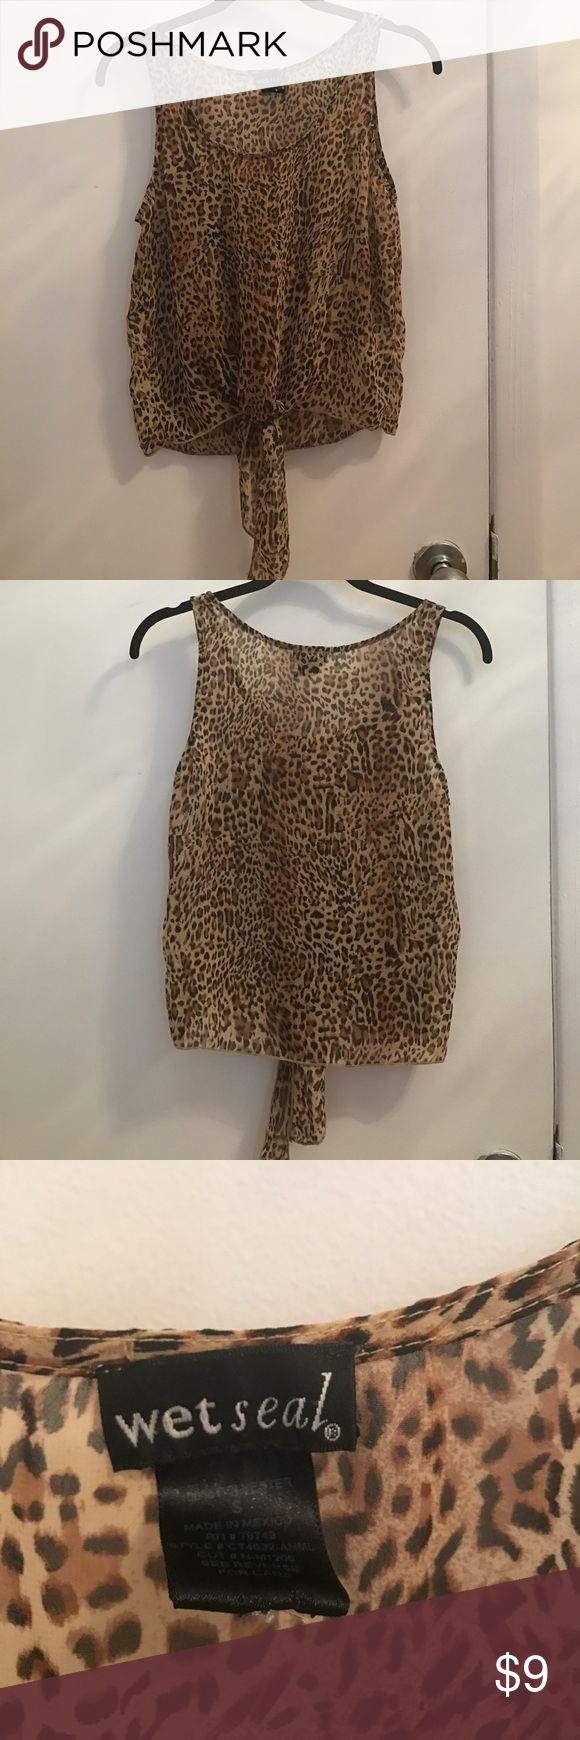 Leopard Top Upper cute leopard top! Worn a few times and is in great condition! Looks great with shorts or leggings! Wet Seal Tops